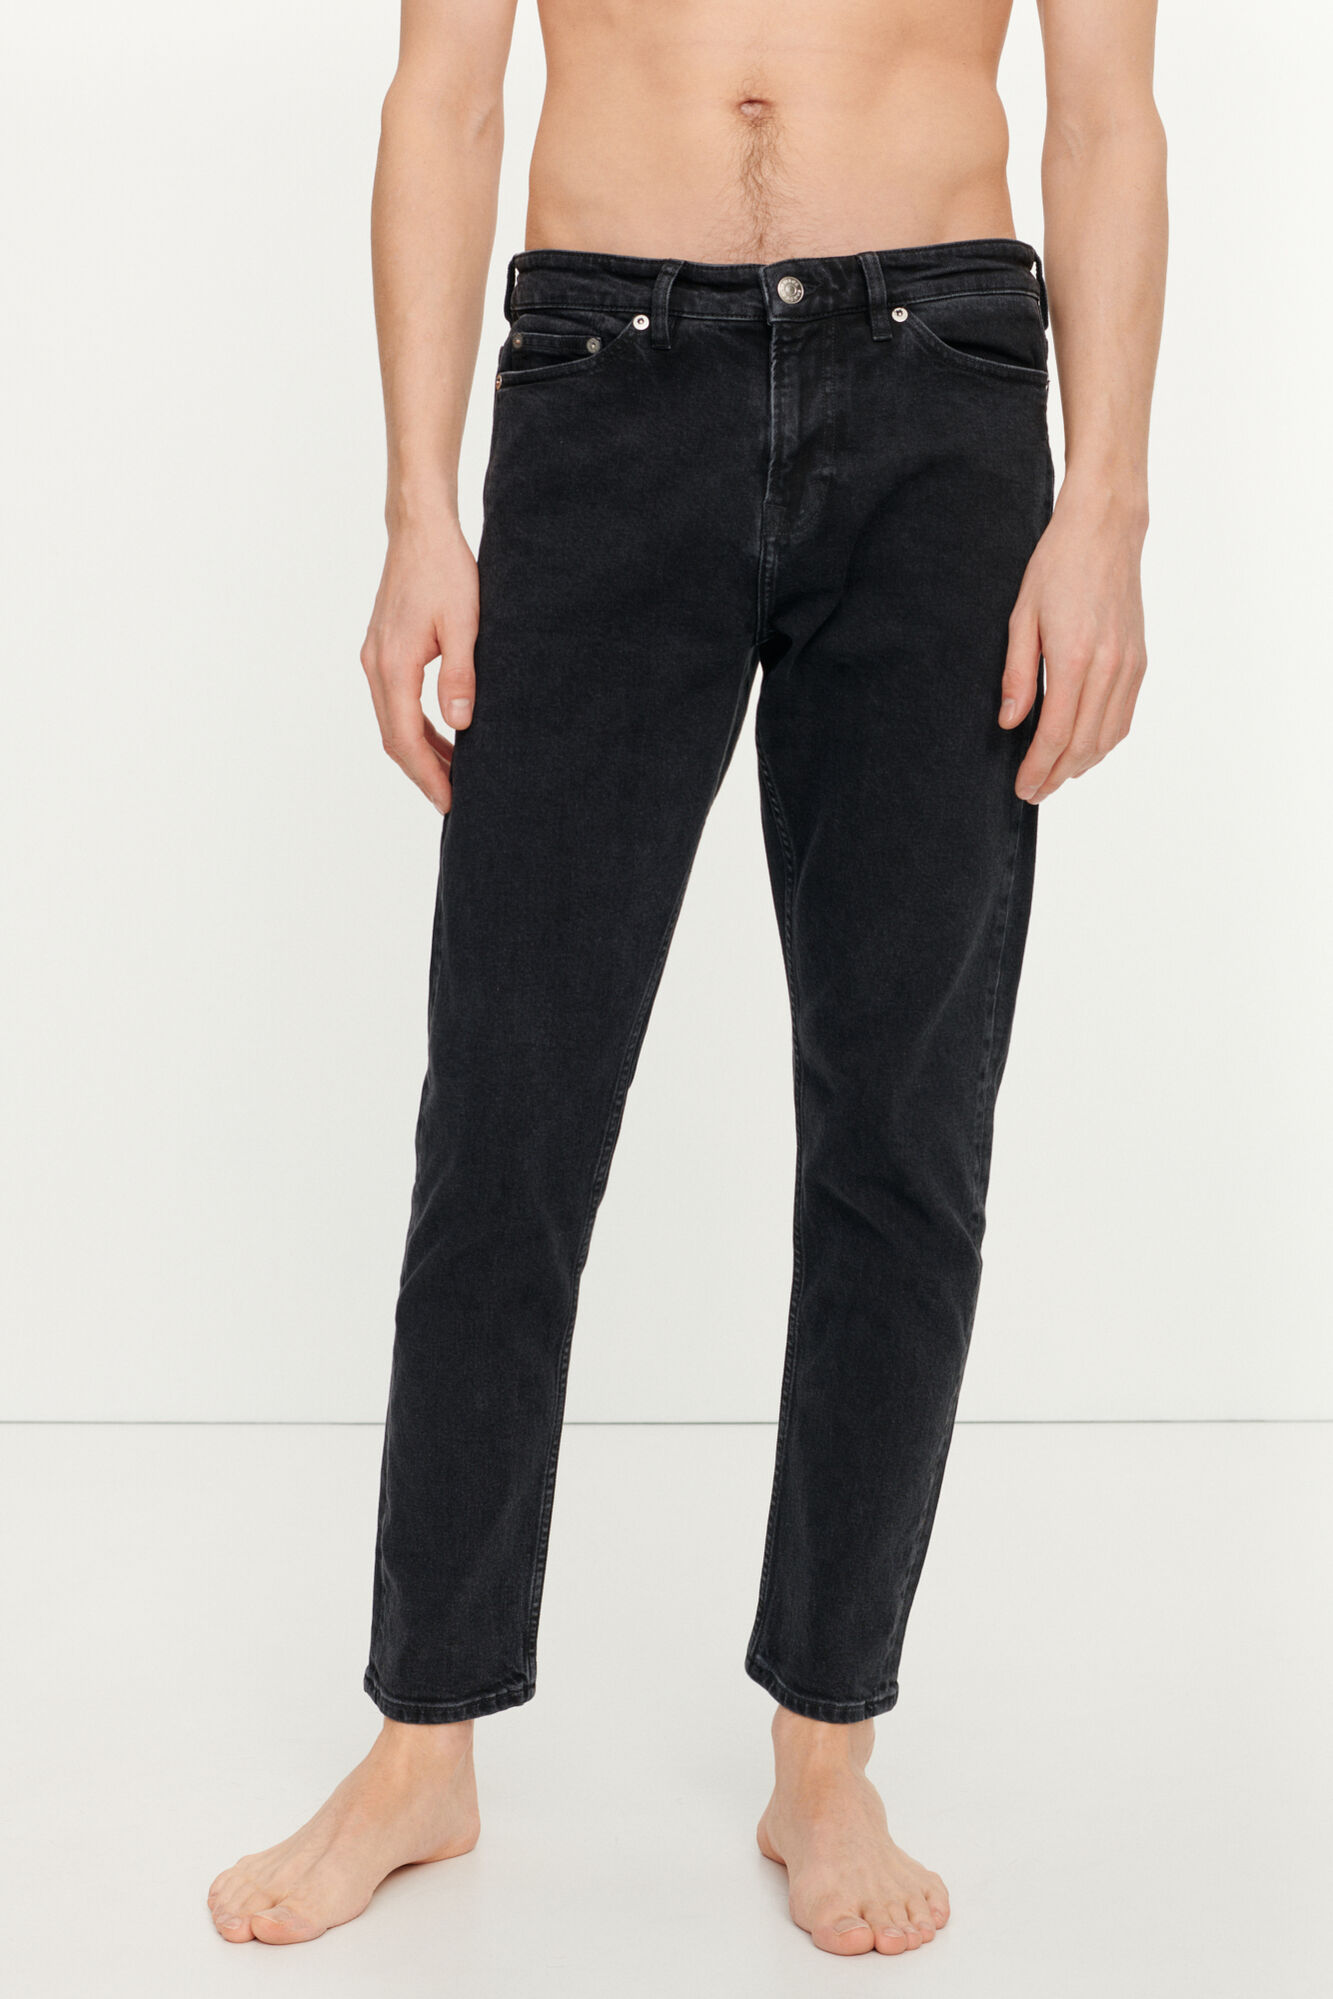 Cosmo jeans 11356